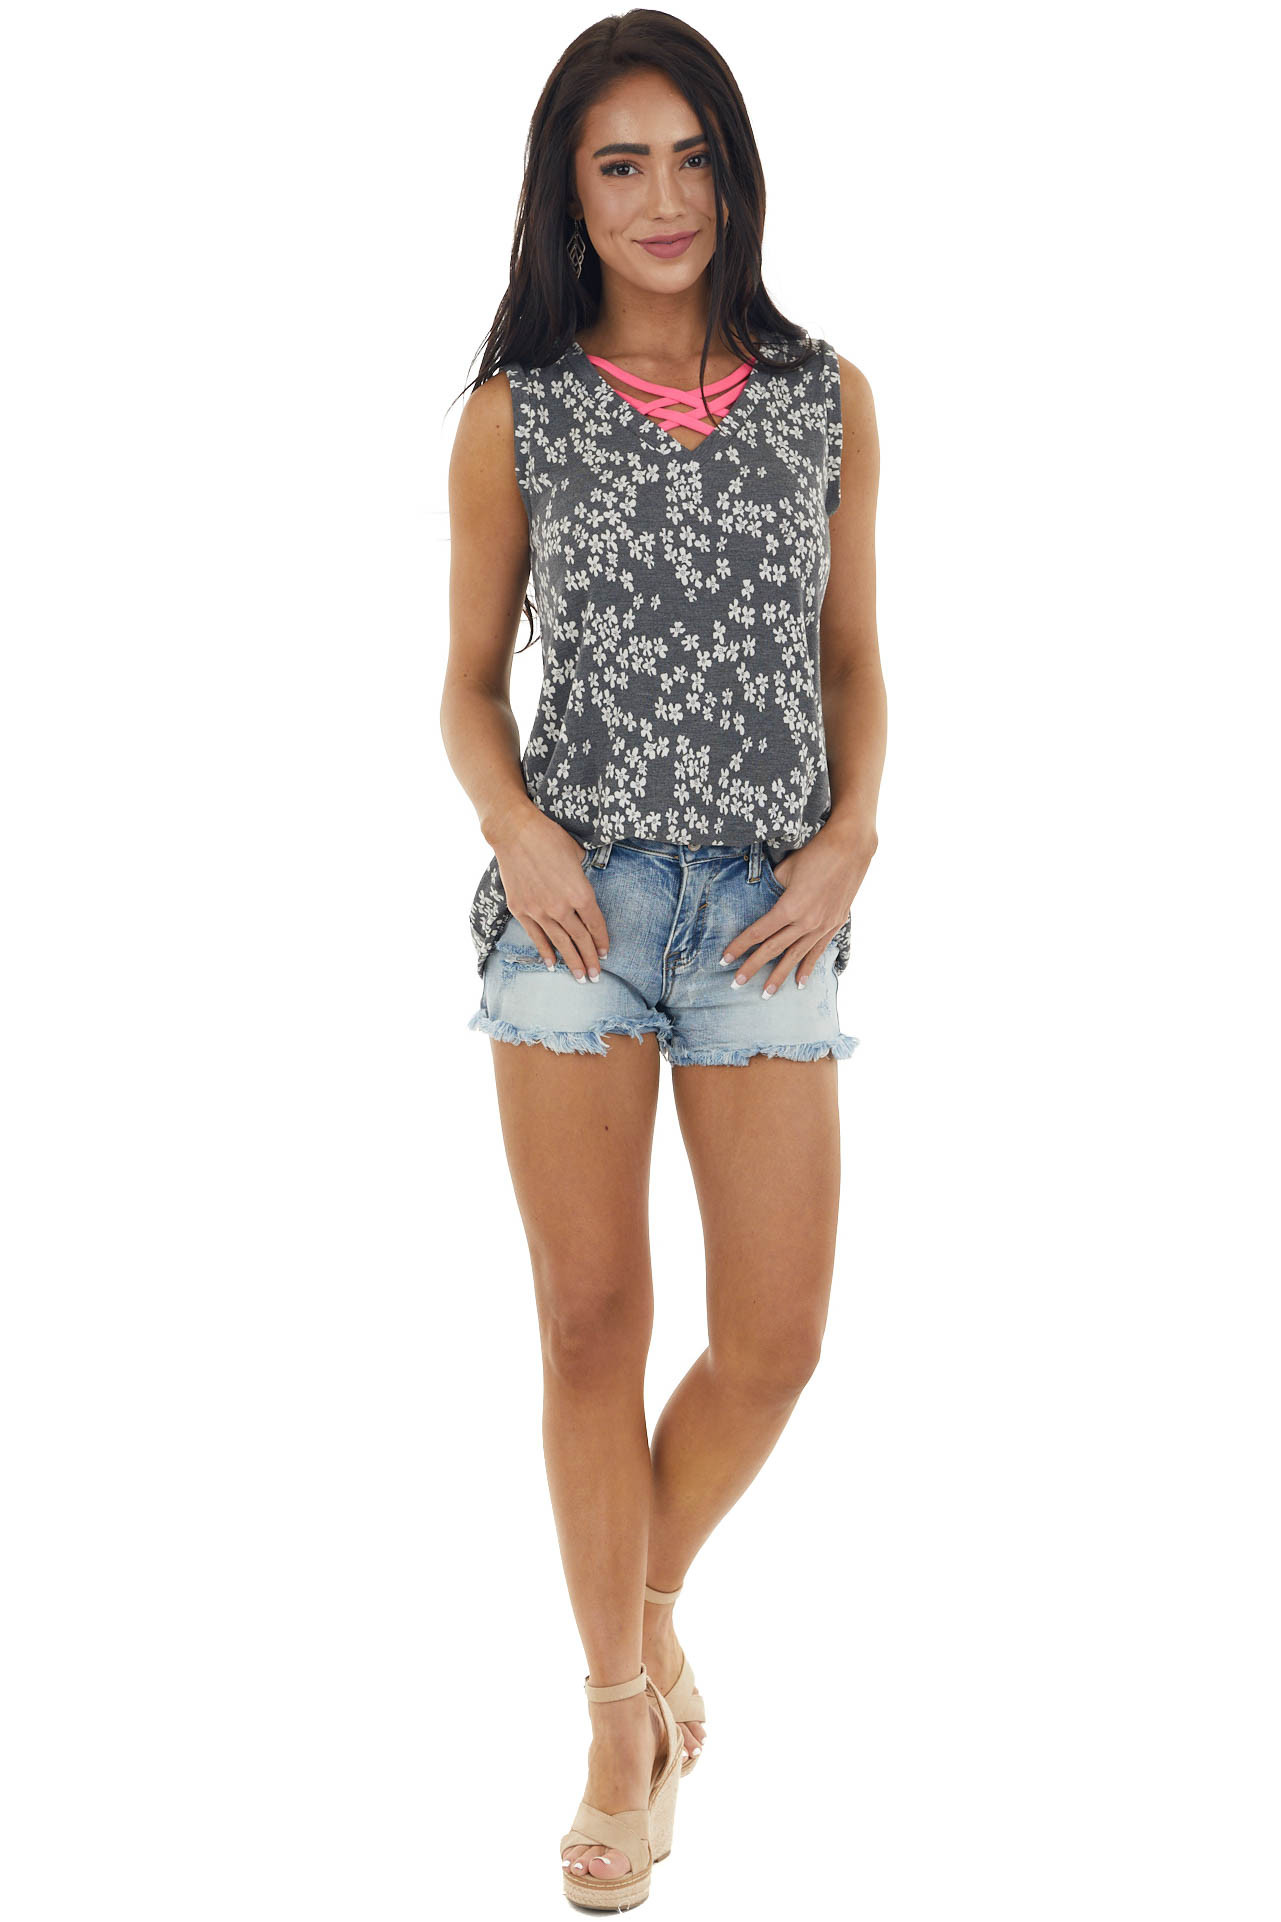 Graphite Ditsy Floral Criss Cross Neck Top